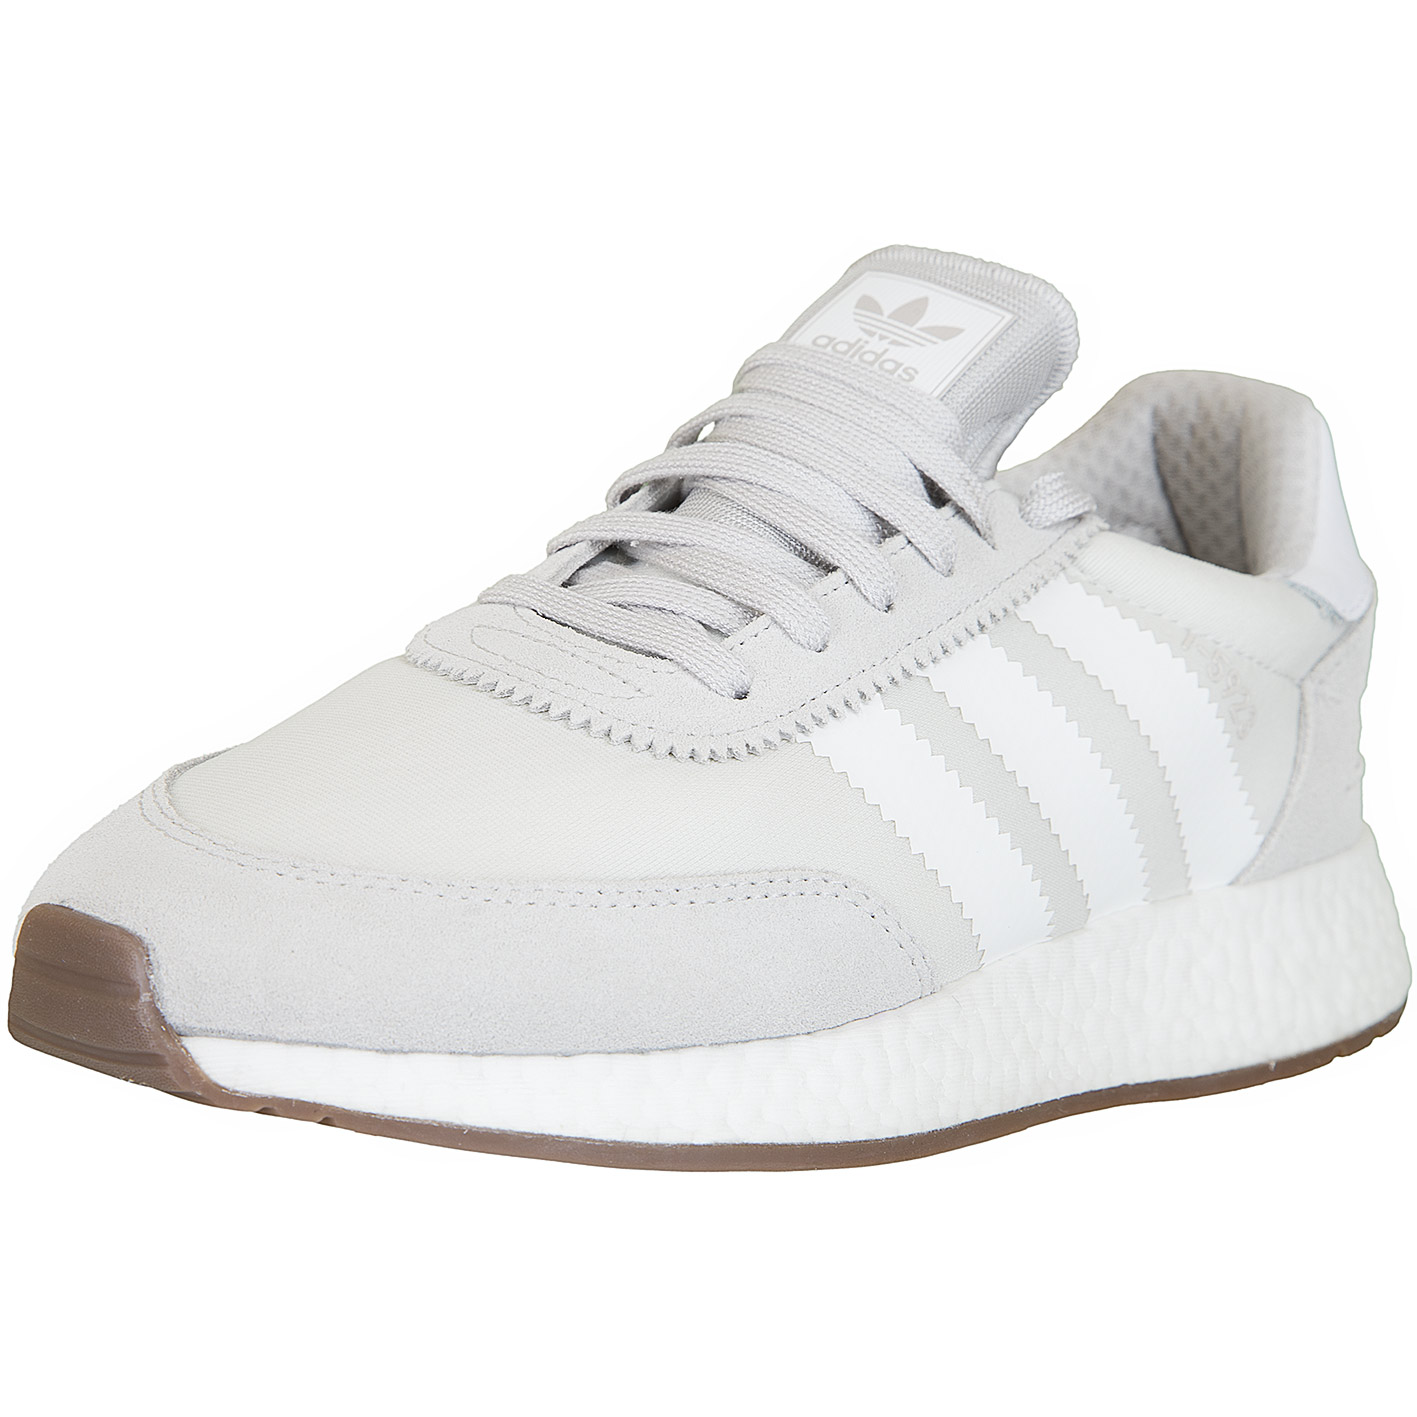 sports shoes cheap sale save up to 80% Adidas Originals Sneaker I-5923 grau/weiß